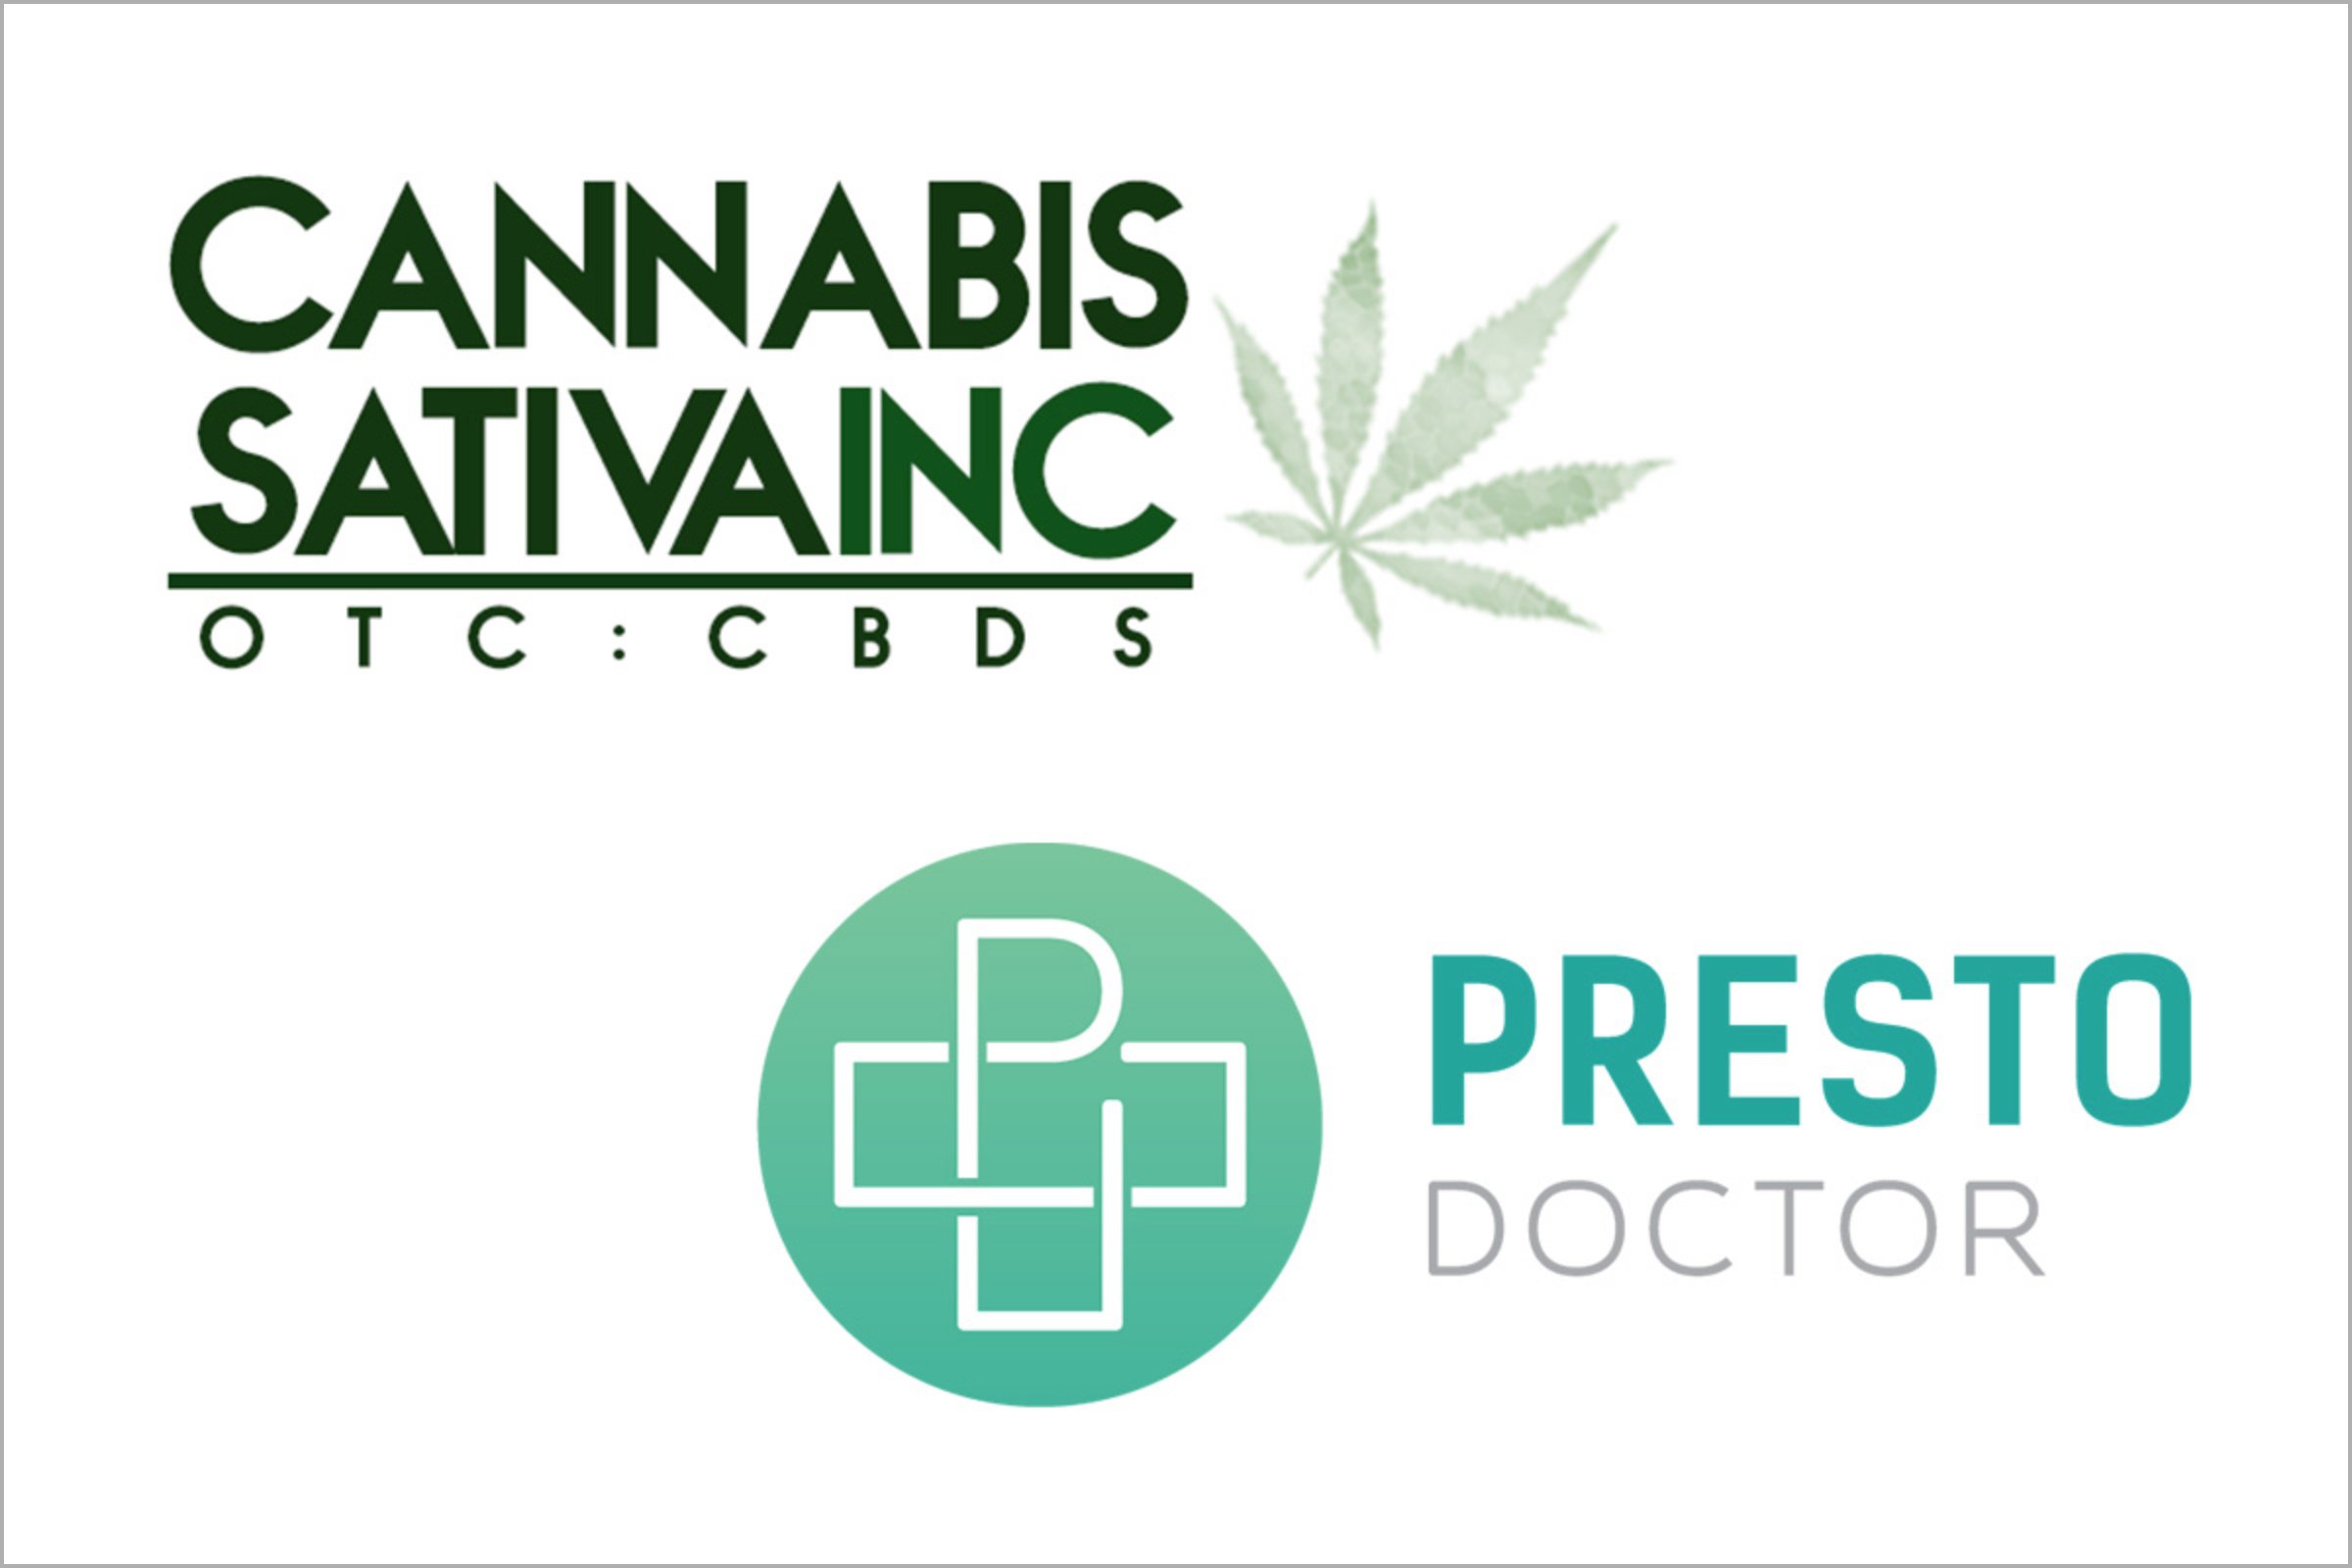 Pennsylvania Medical Marijuana Card, Presto Doctor, Cannabis Sativa Inc